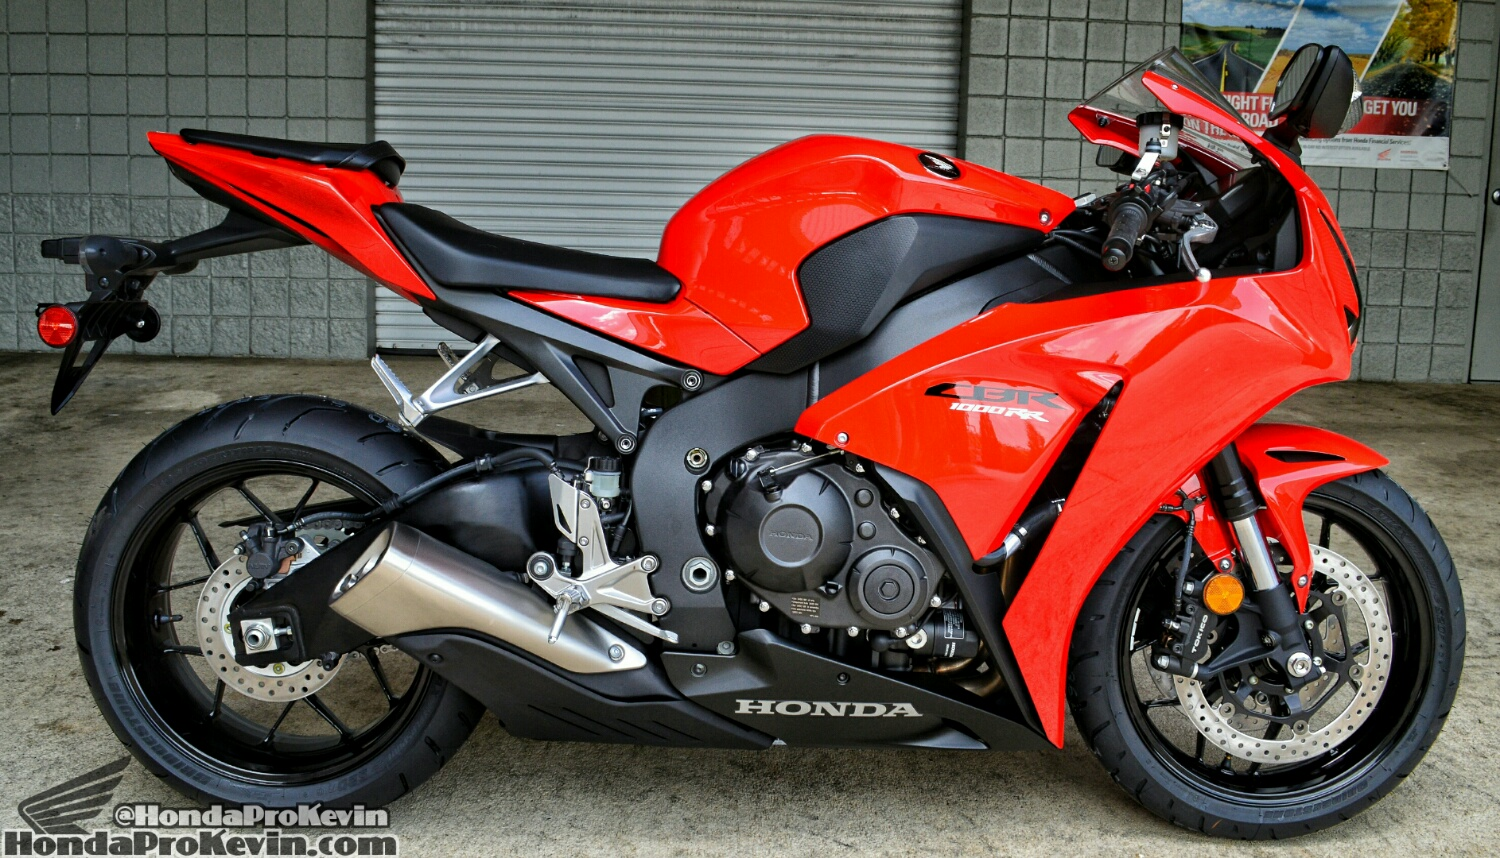 2015 Honda Cbr1000rr Review Specs Pictures Videos